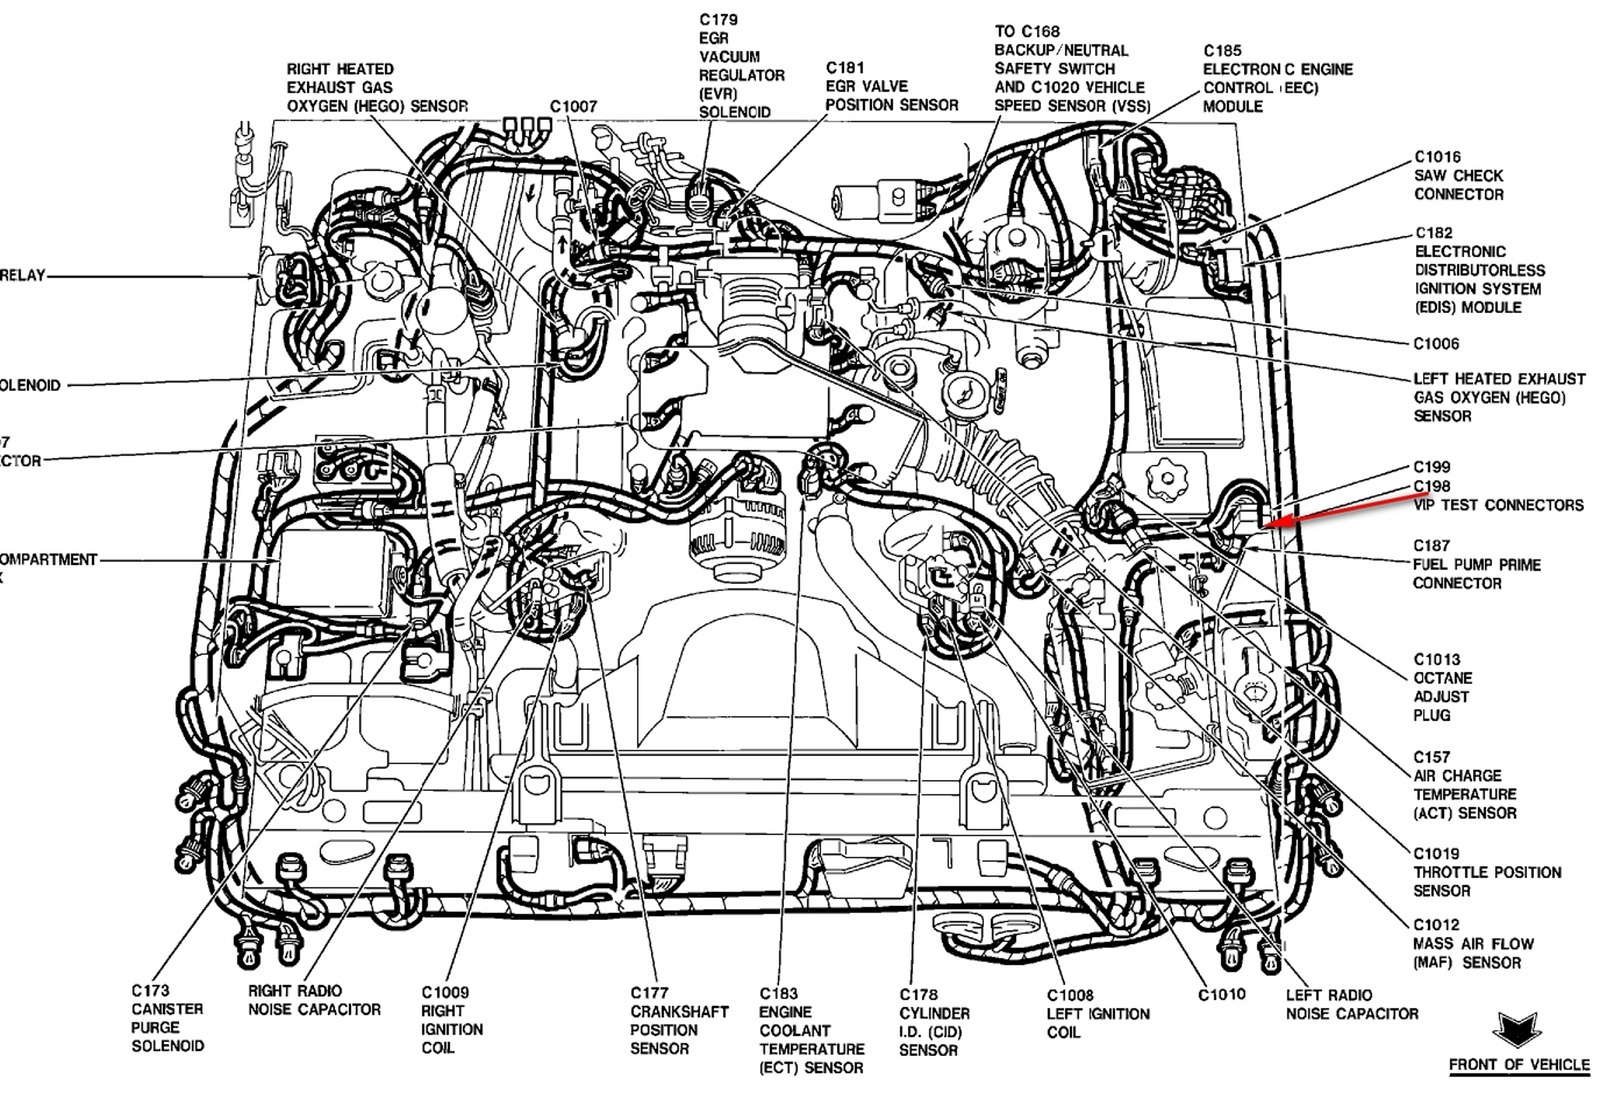 98 mercury grand marquis wiring diagram  | 1600 x 1100